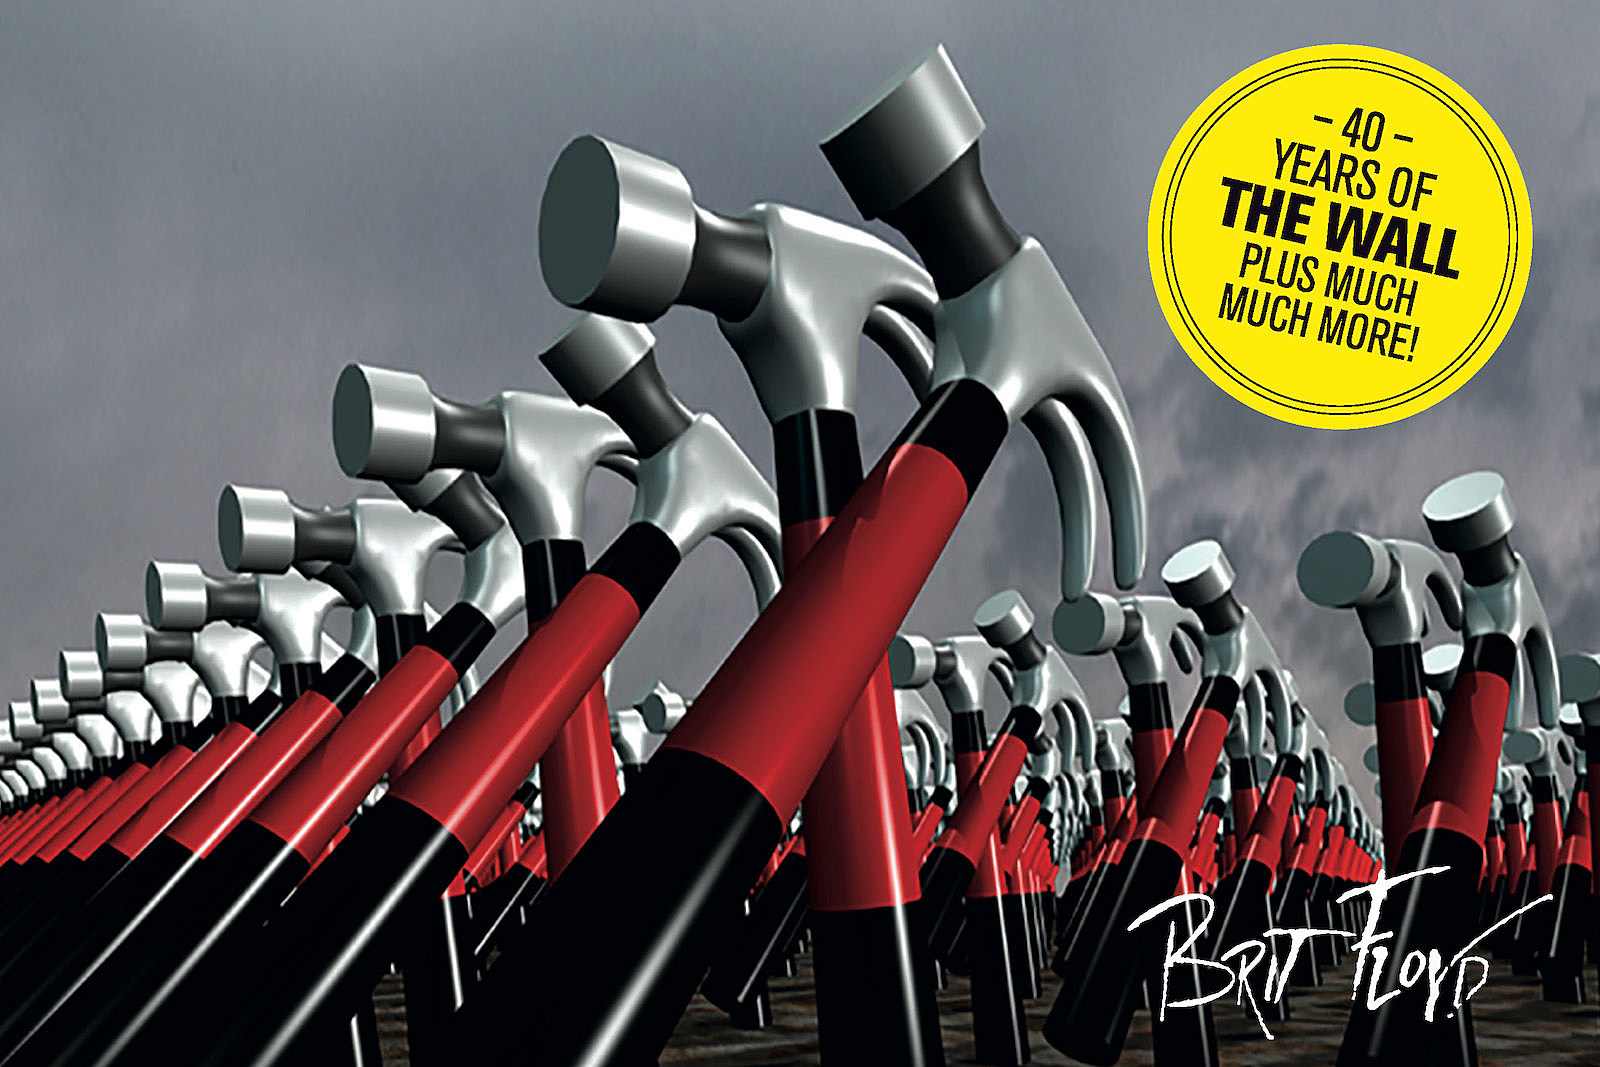 Brit Floyd touring '40 Years of The Wall' ++ more Pink Floyd